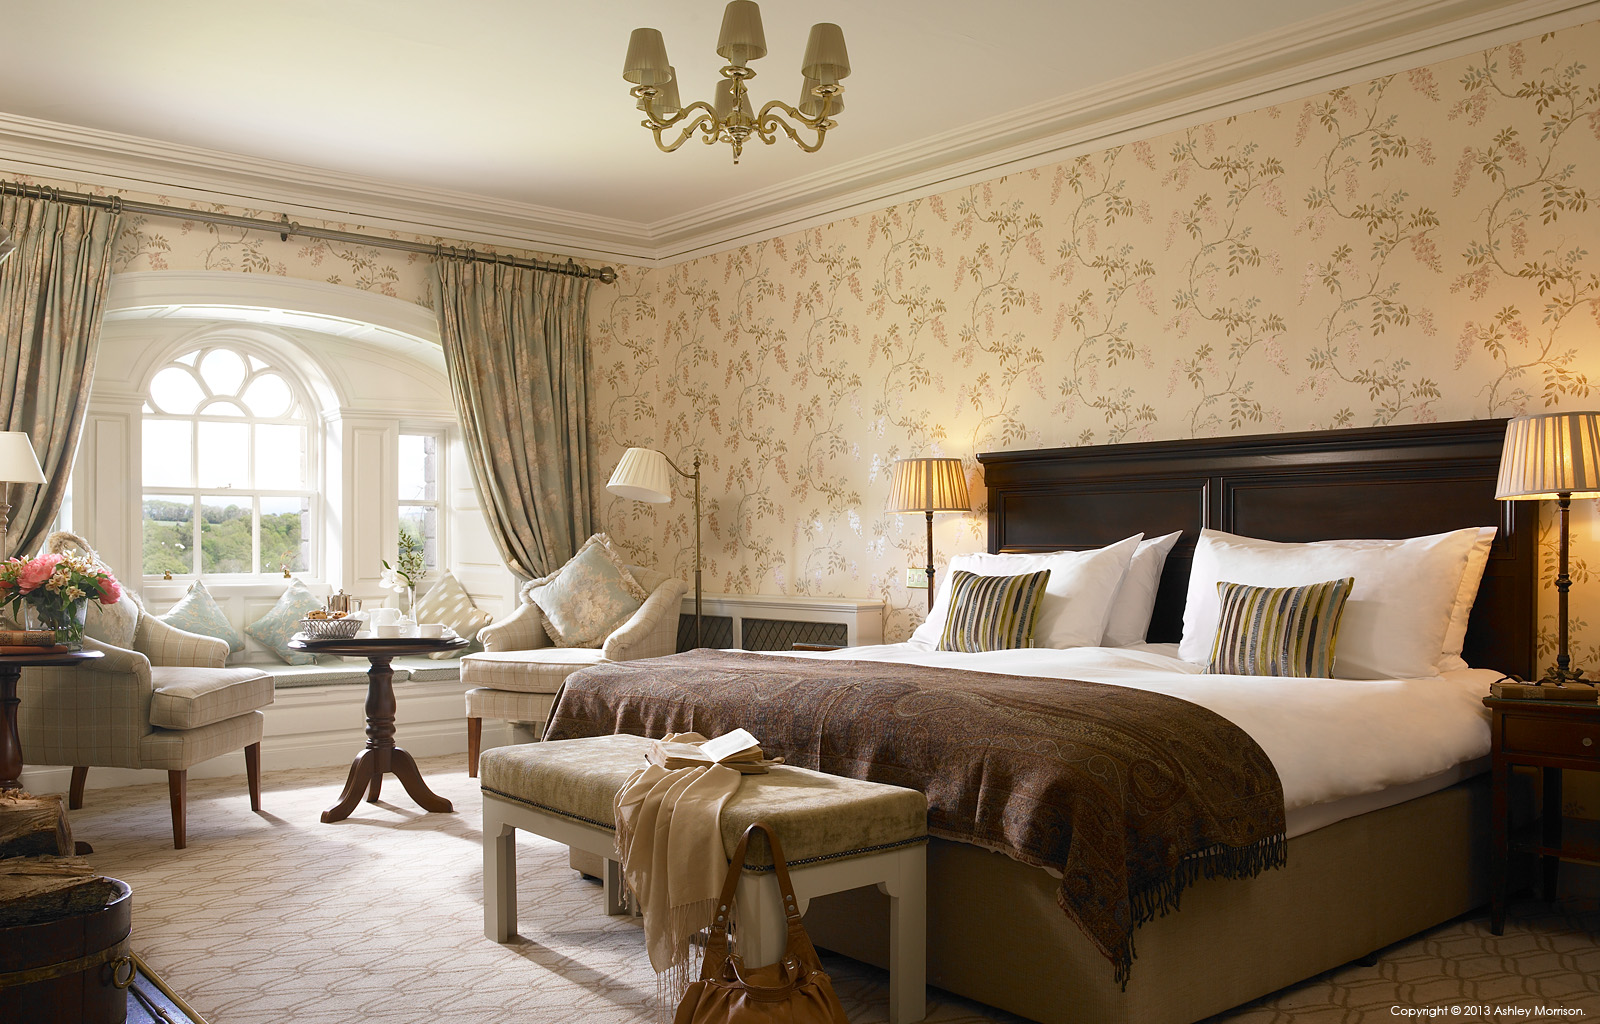 Bedroom suite in Mount Juliet House at Mount Juliet Country Estate in County Kilkenny.